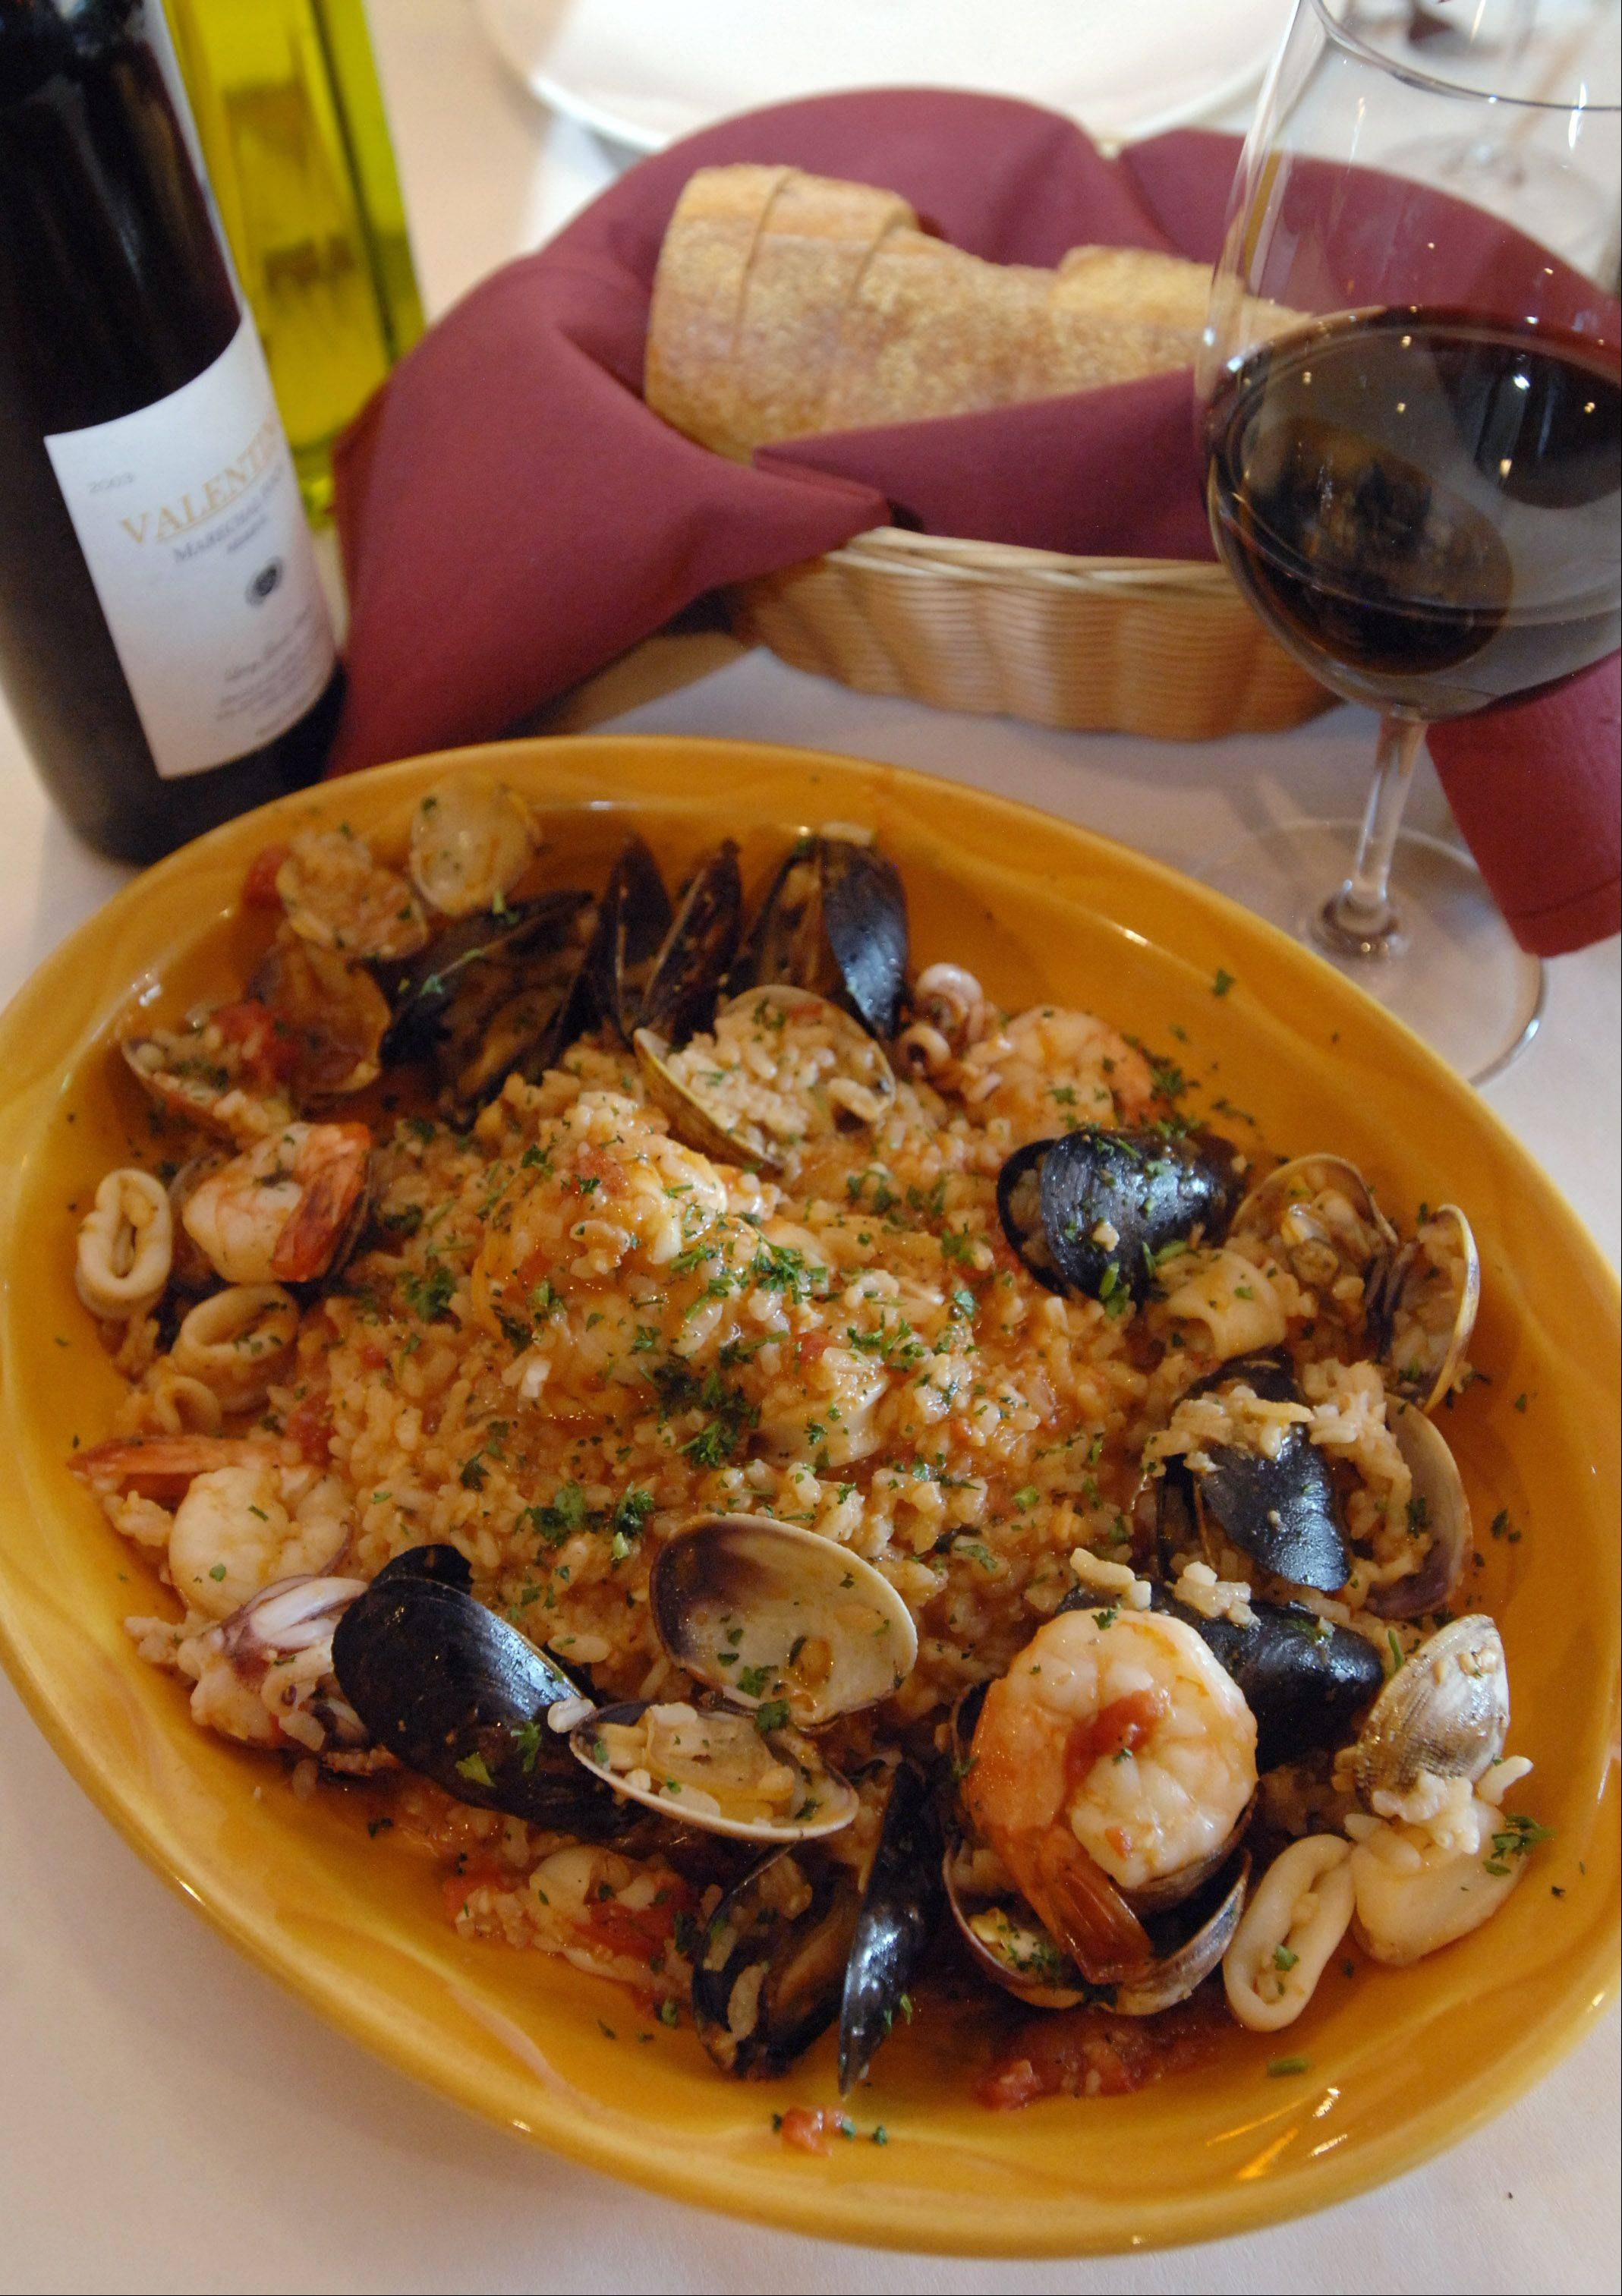 Mussels, clams, scallops, lobster, shrimp and calamari fill the seafood risotto that chef Salvatore Cardone serves at Mambo Italiano in Mundelein.